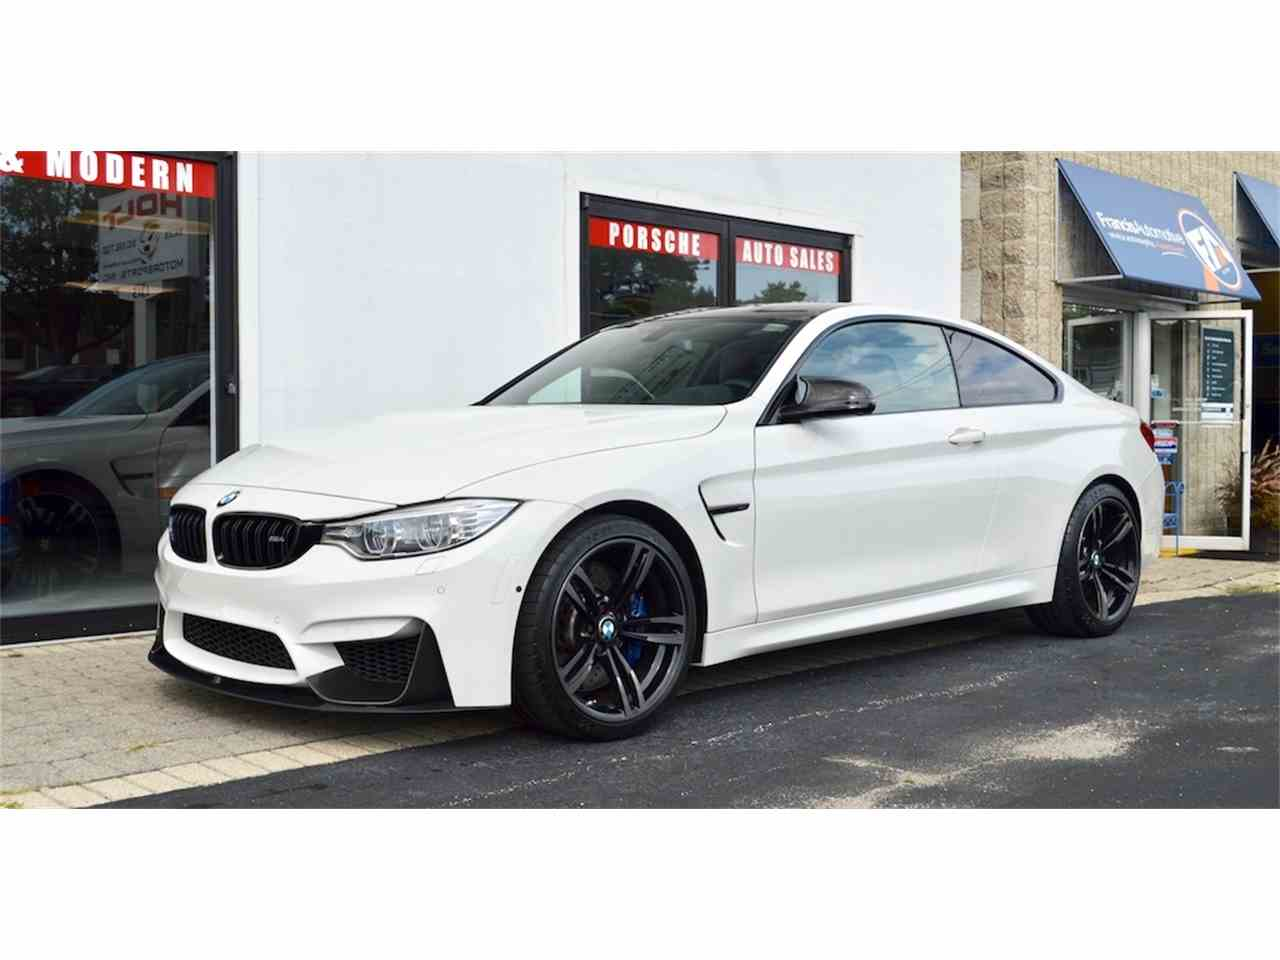 Large Picture of 2016 BMW M4 located in West Chester Pennsylvania - $58,500.00 - M8RM